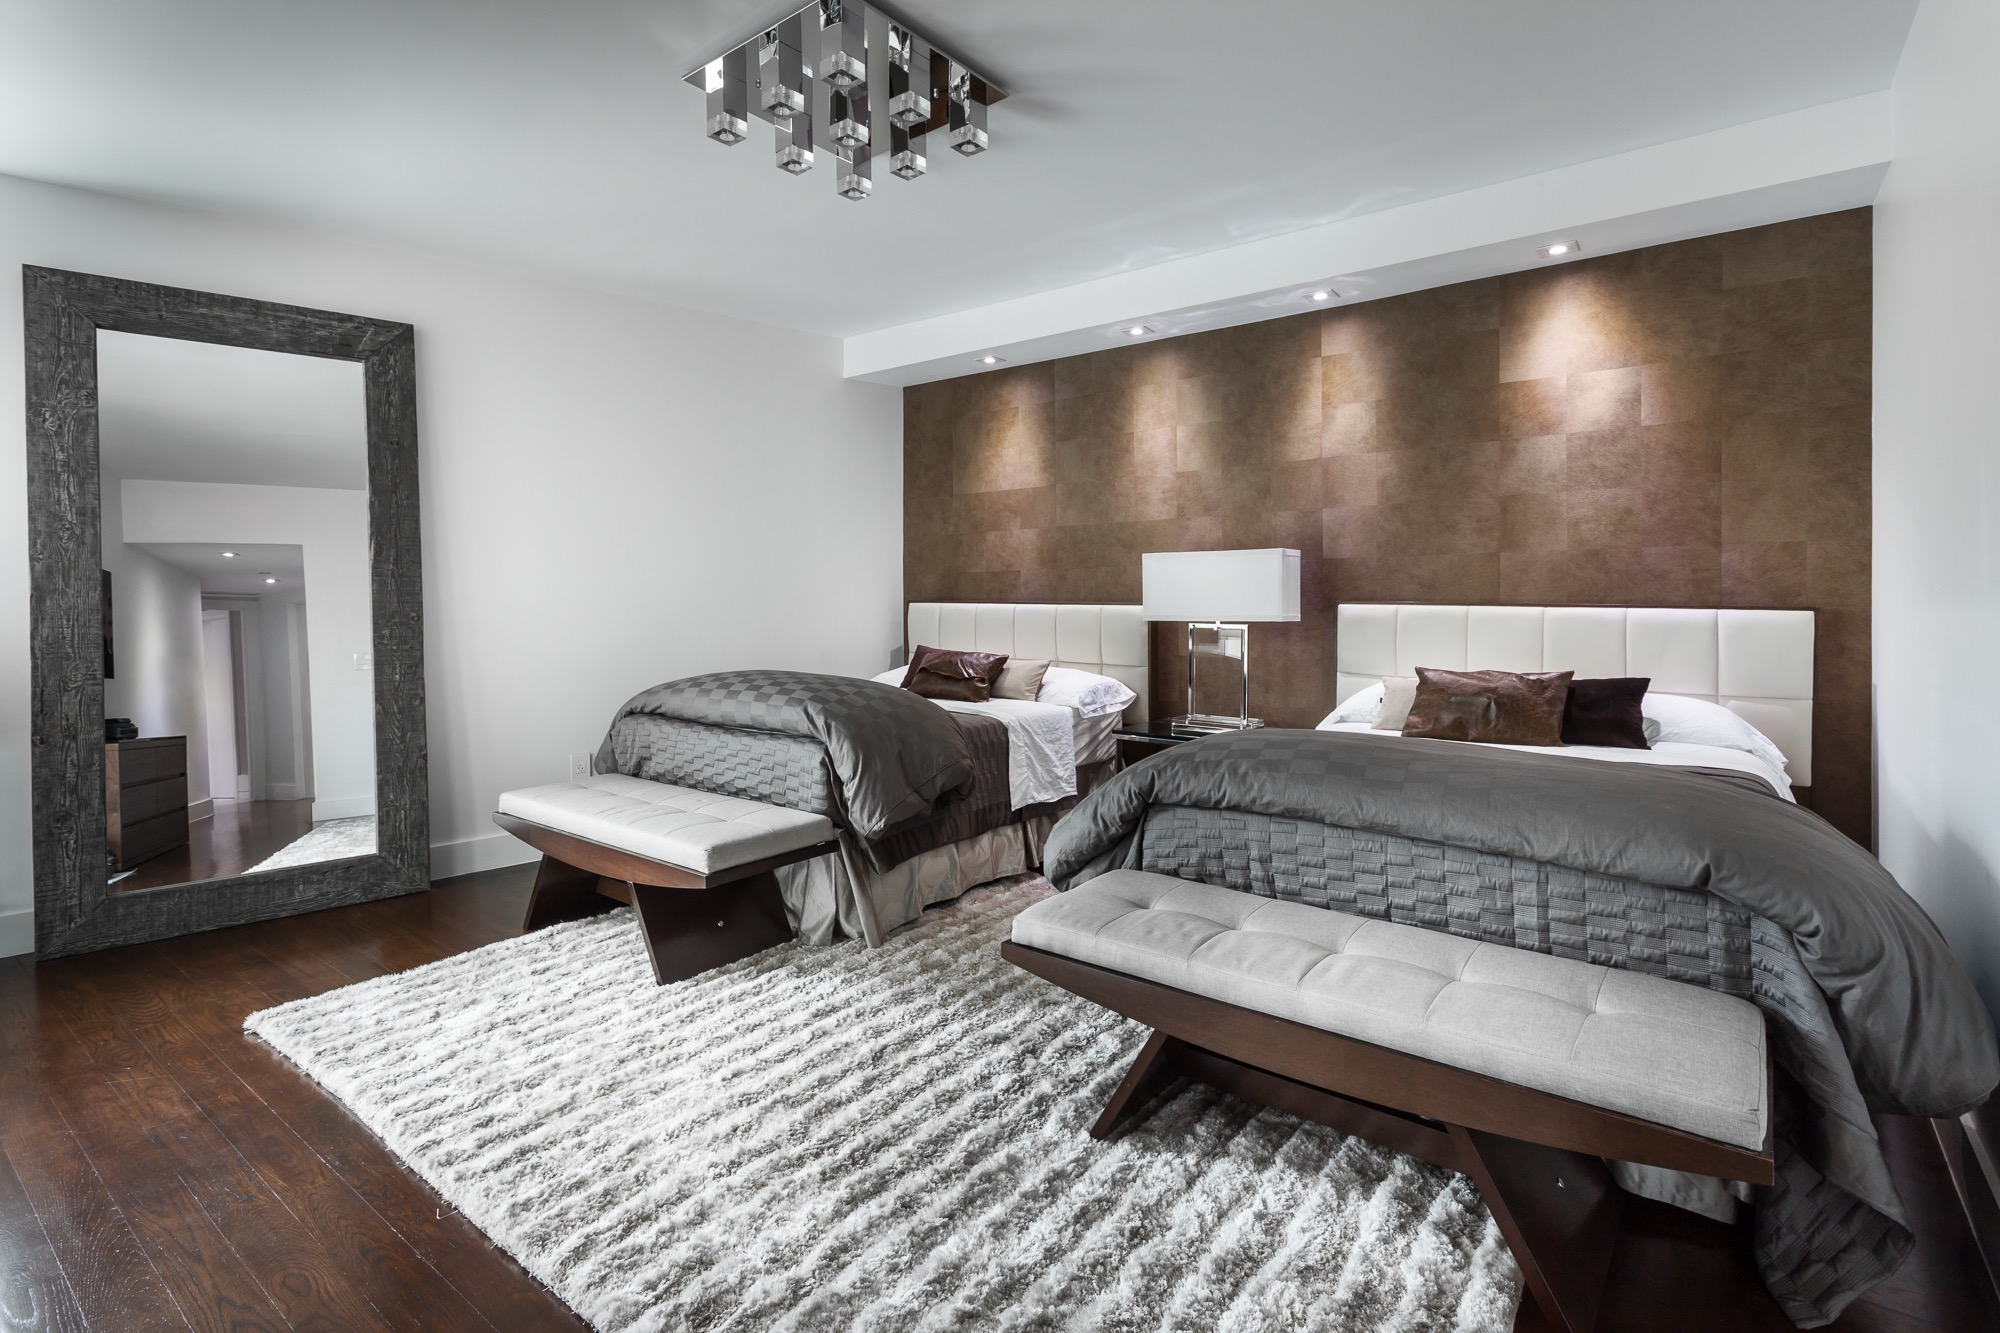 Modern Luxury Bedroom With Twin King Bed (Image 16 of 23)